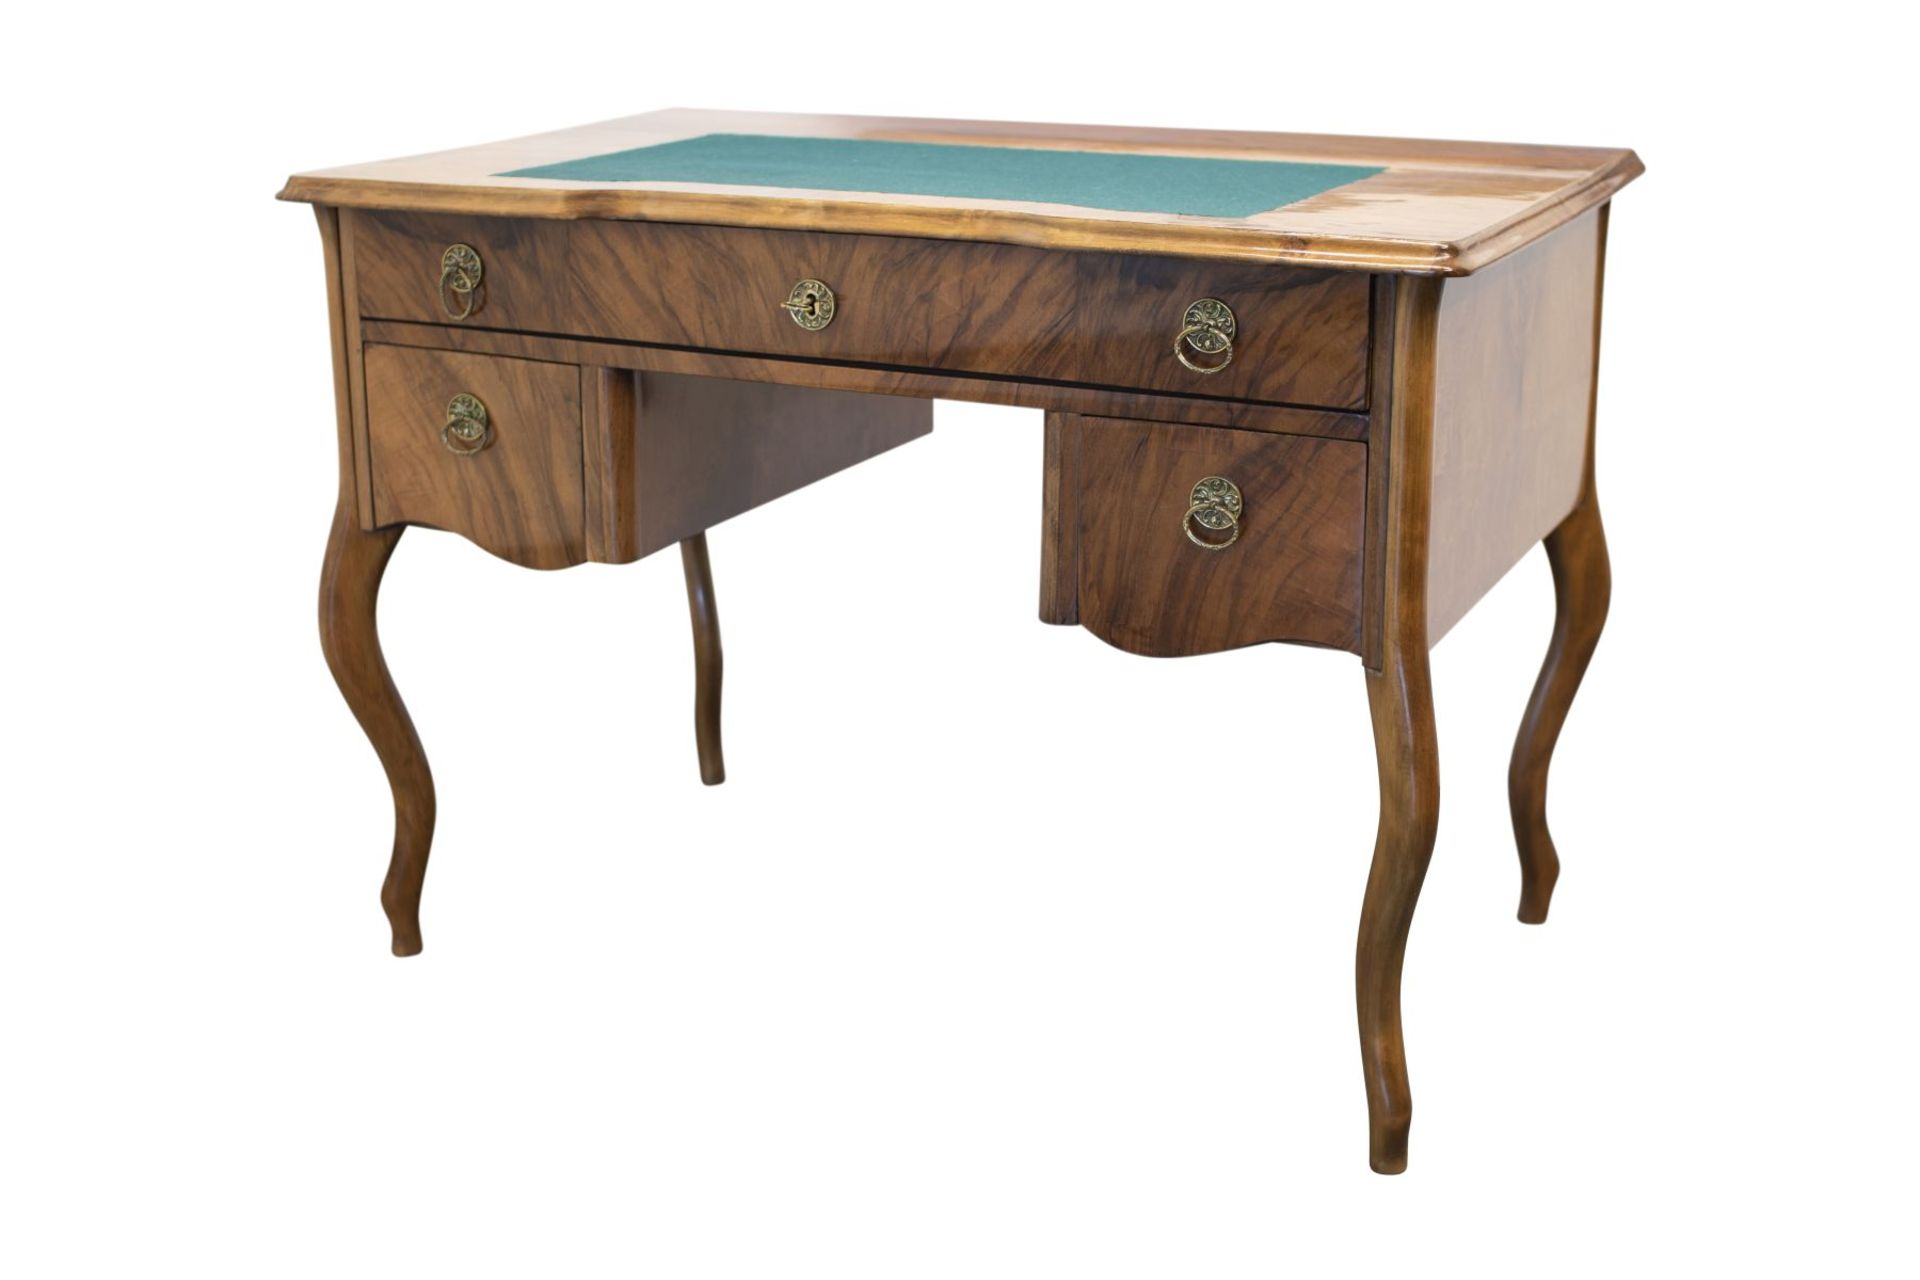 Biedermeier style desk, second half of the 19th century - Image 3 of 4